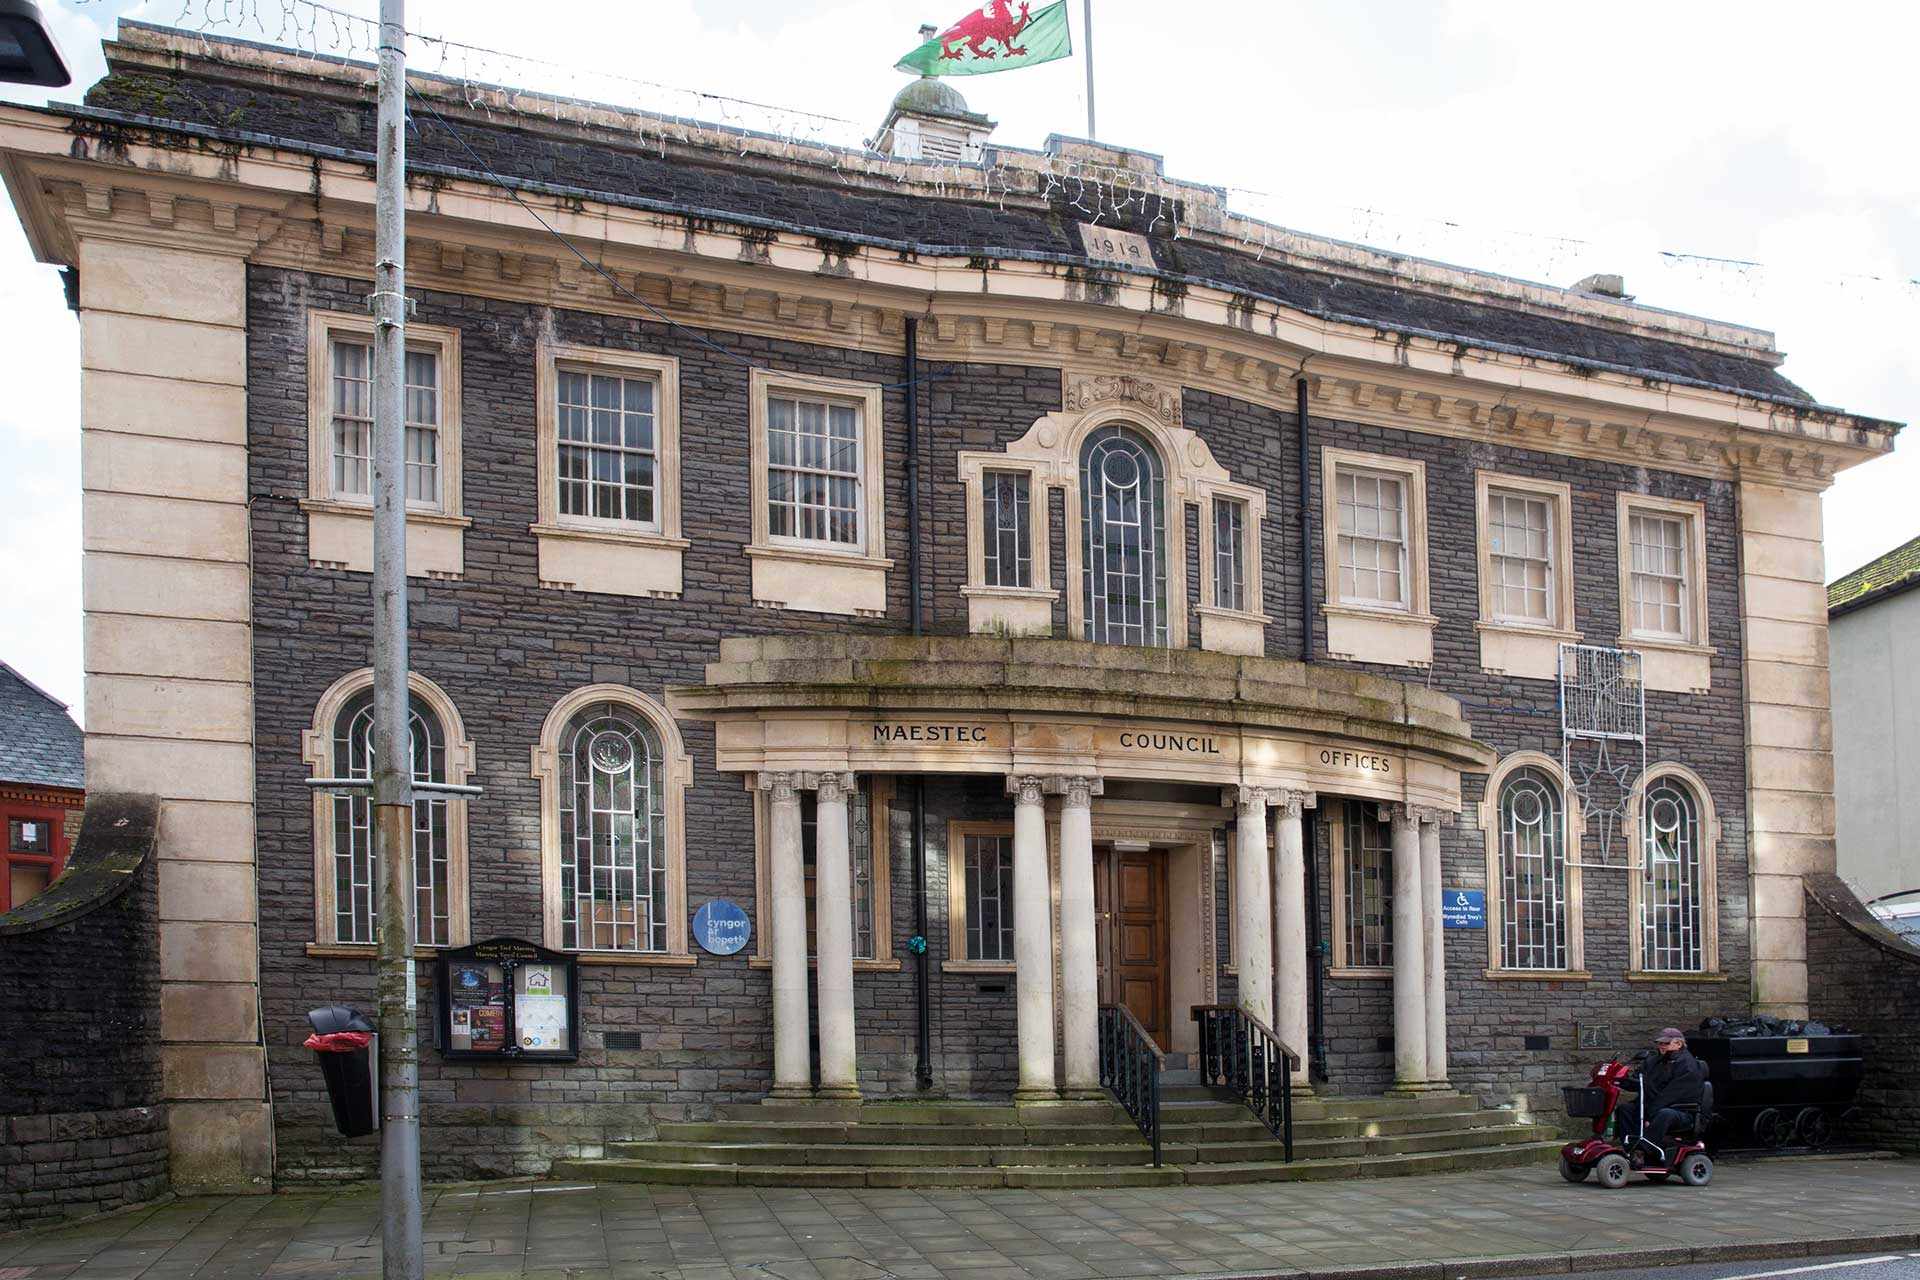 Maesteg Council Offices